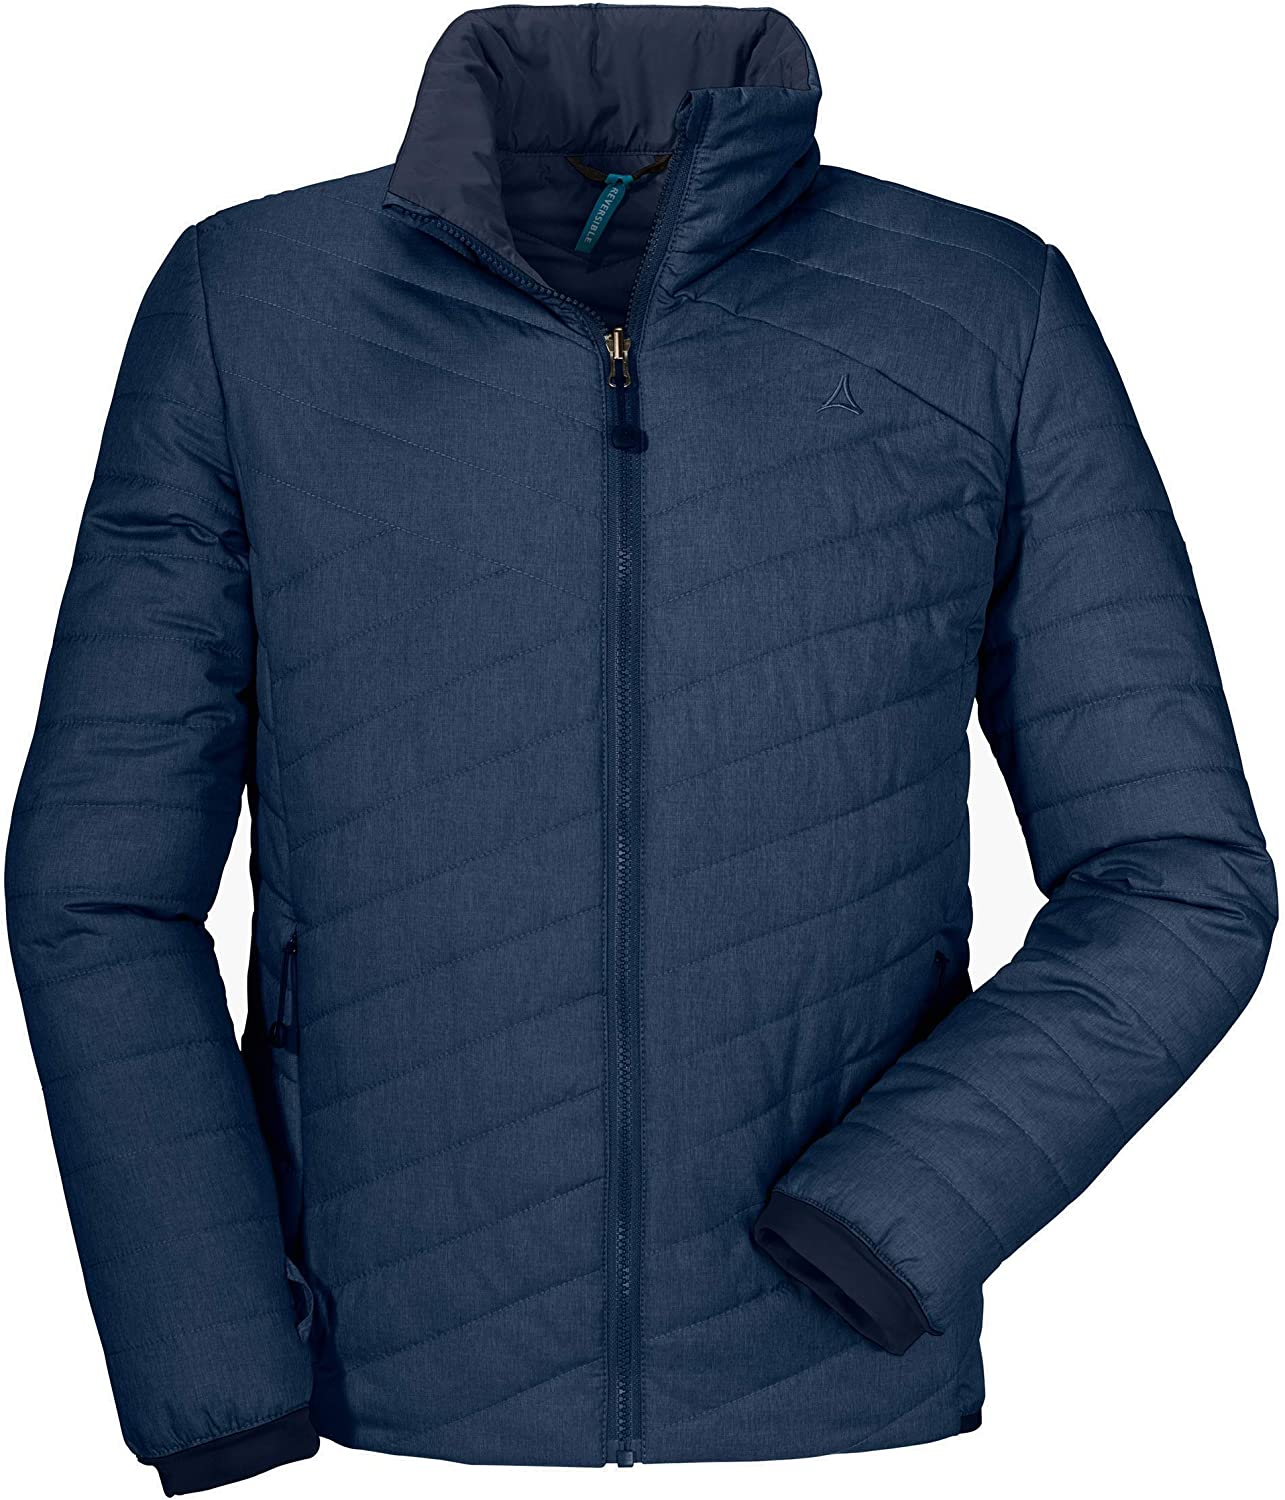 Schöffel Ventloft Jacket Adamont2, Piumino Termico Uomo dress blues